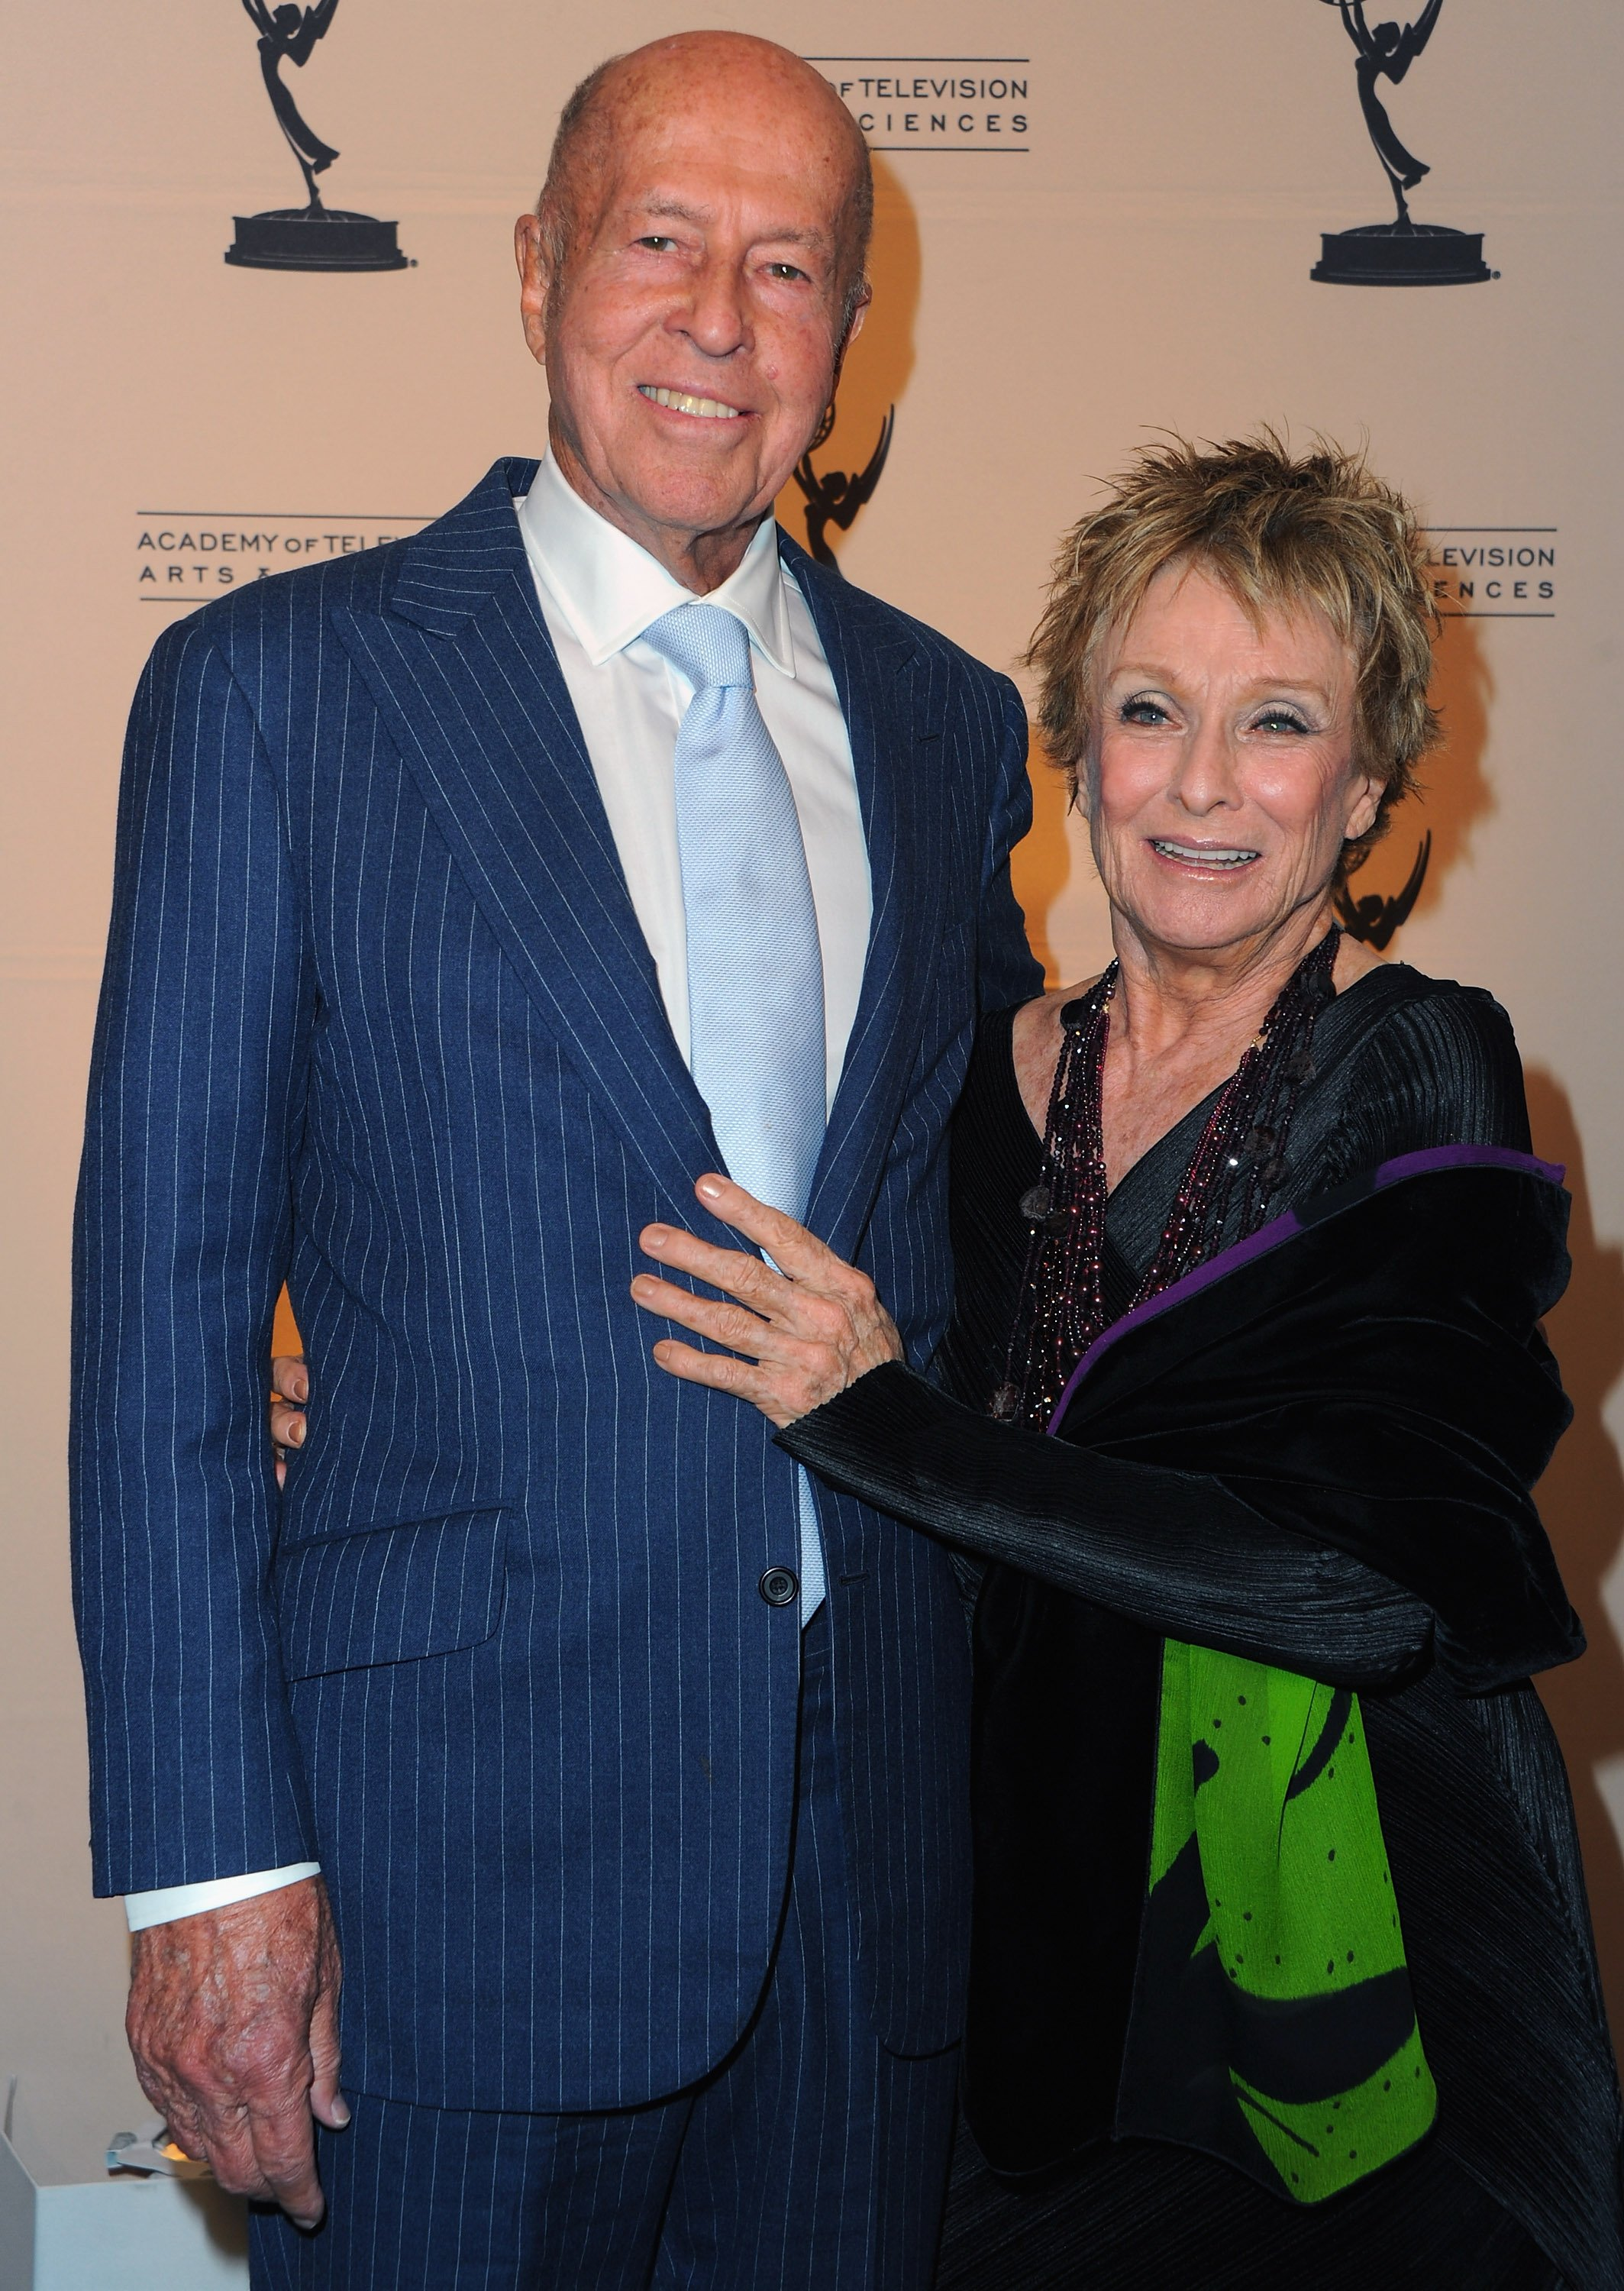 Director George Englund and actress Cloris Leachman arrive to the Academy of Television Arts & Sciences' Hall of Fame Committe's 20th Annual Induction Gala on January 20, 2011 in Beverly Hills, California | Photo: Getty Images